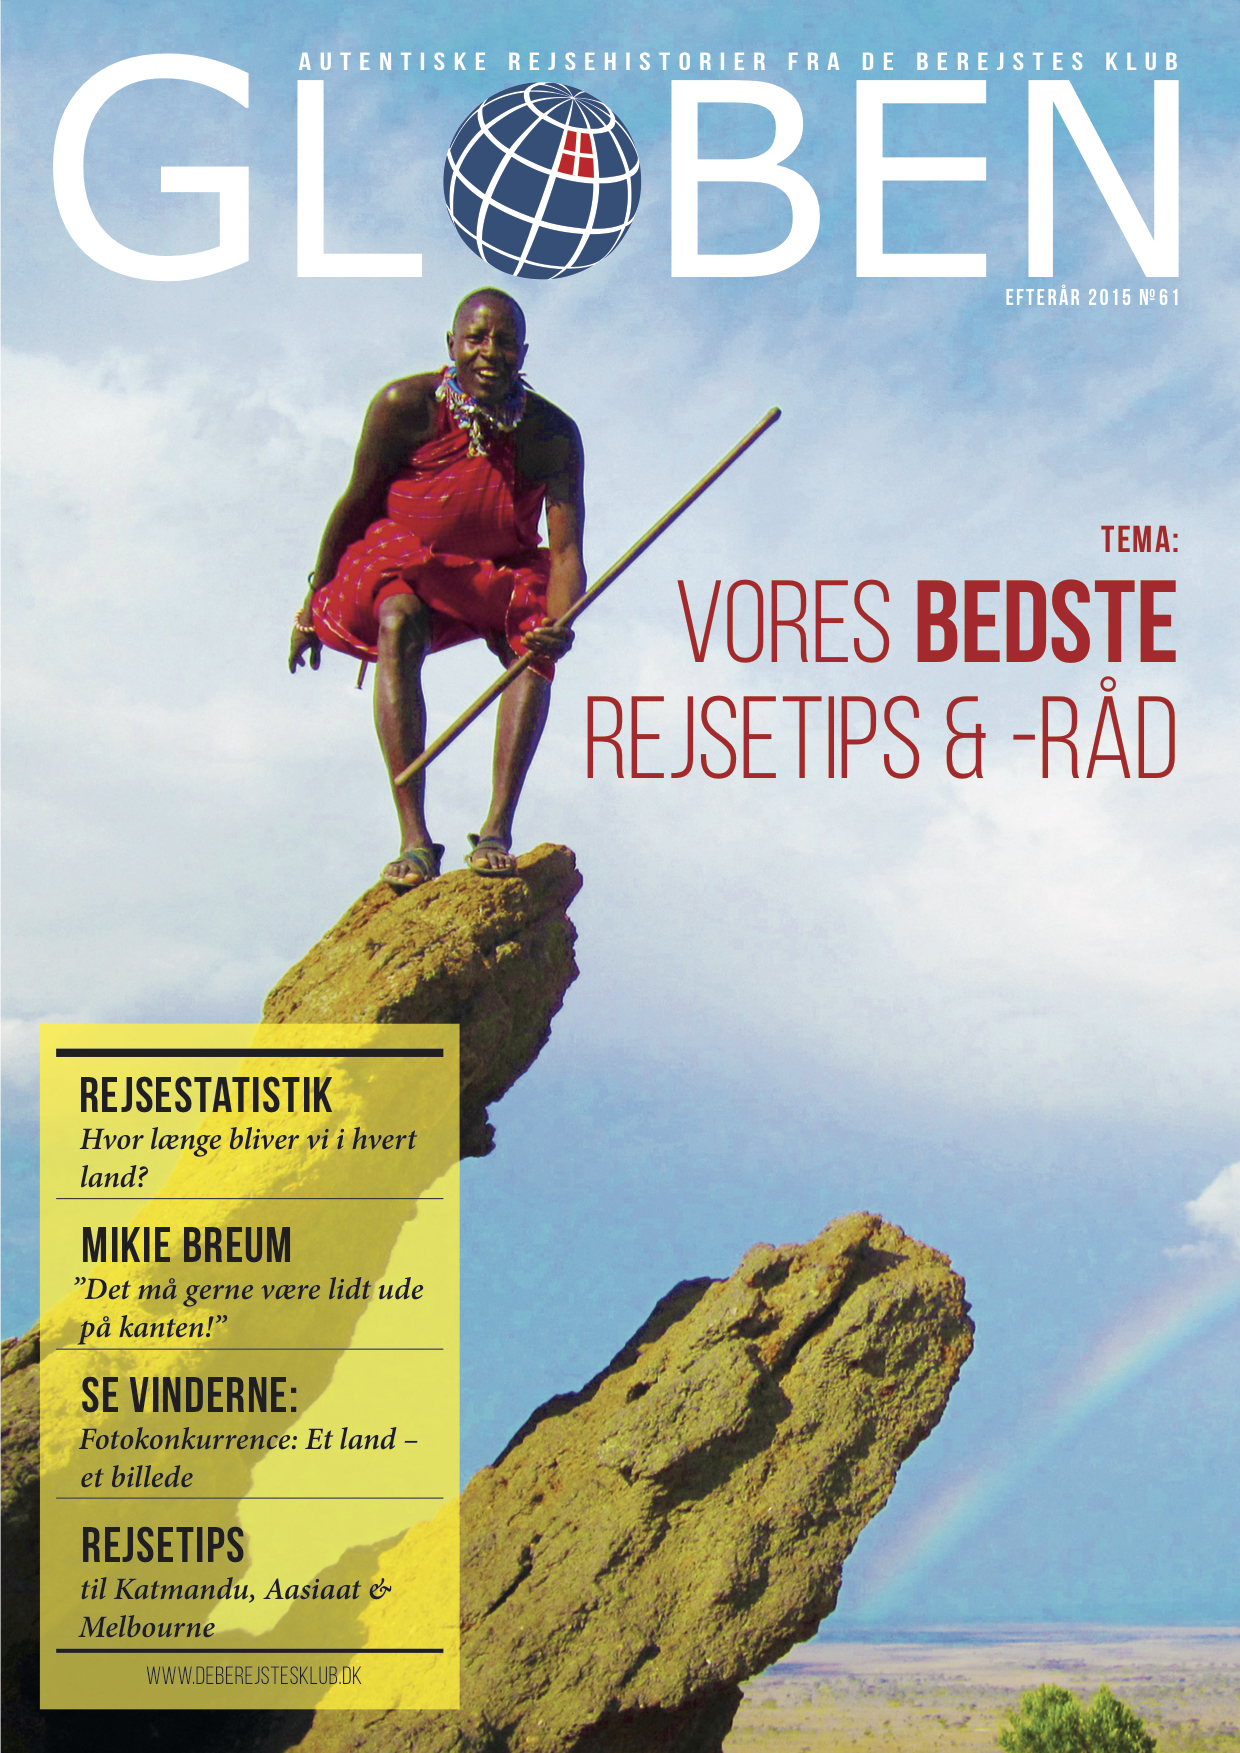 Issue 61: Vores Bedste Rejsetips & -råd   In this issue, several travel tips and suggestions are offered, ranging from how to travel with kids, take a bike tour through Europe, buy cheap flights, etc. Download  here .